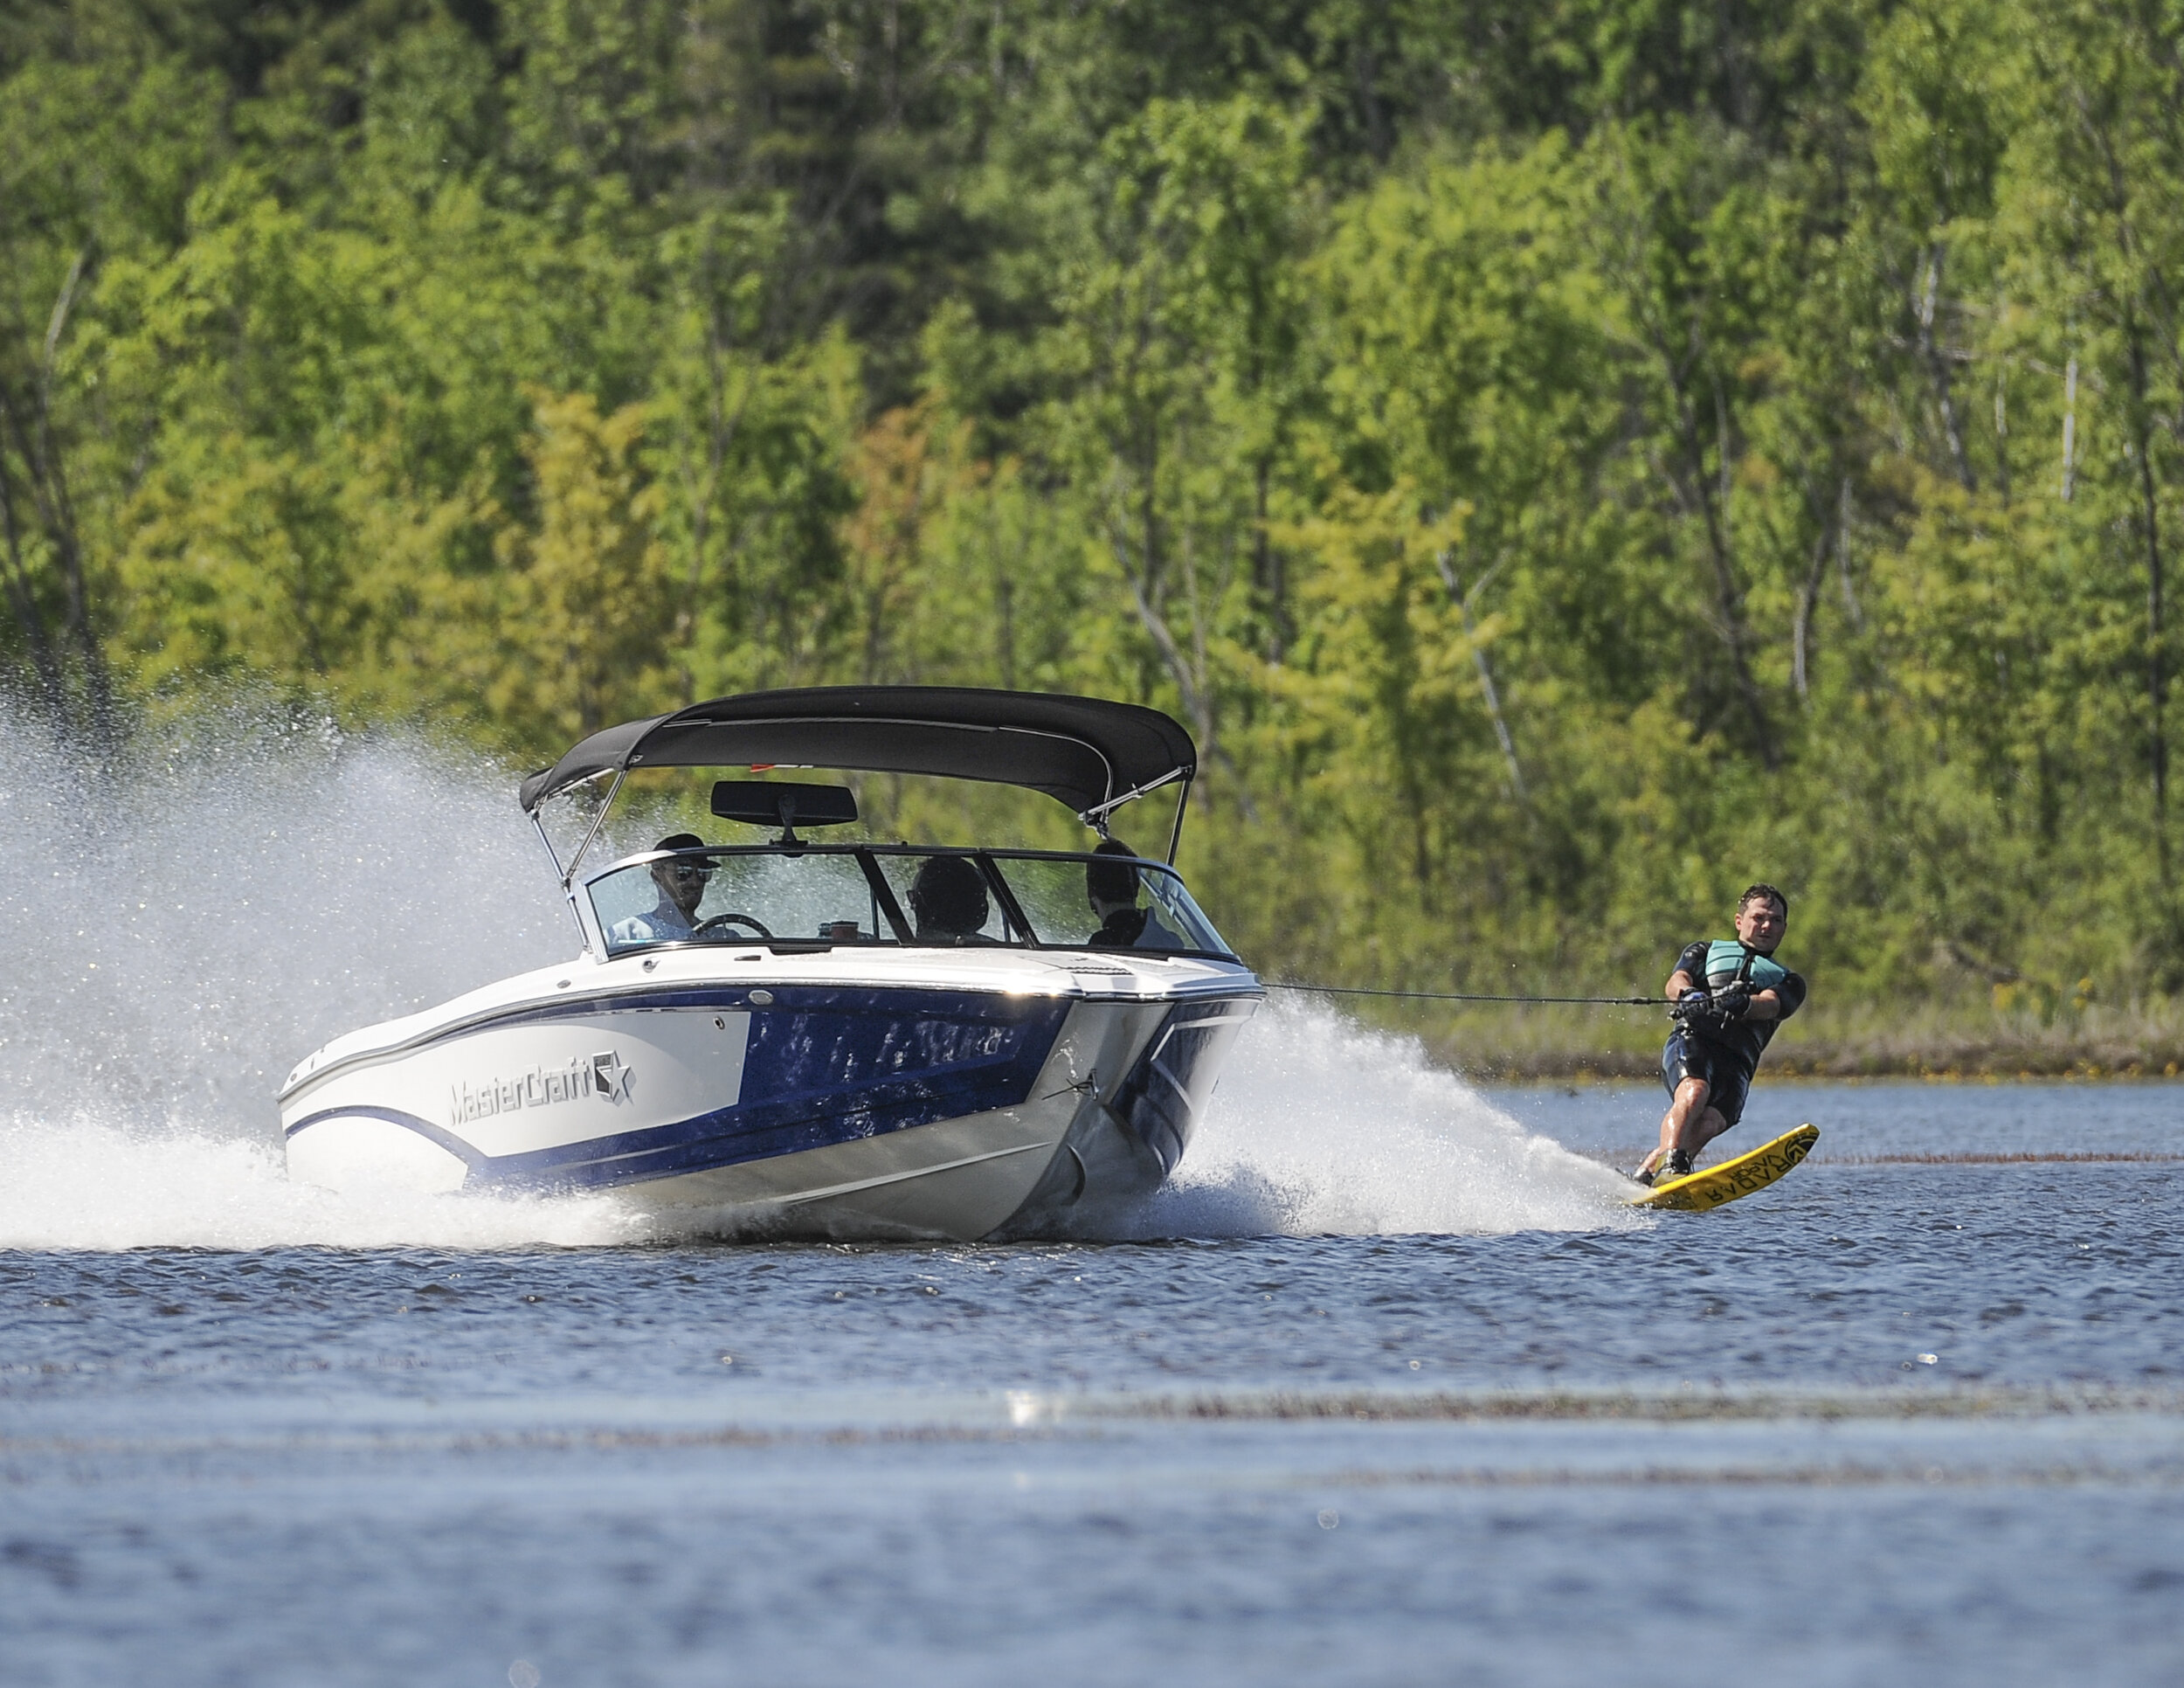 Spreading our love for water skiing one lesson at a time -